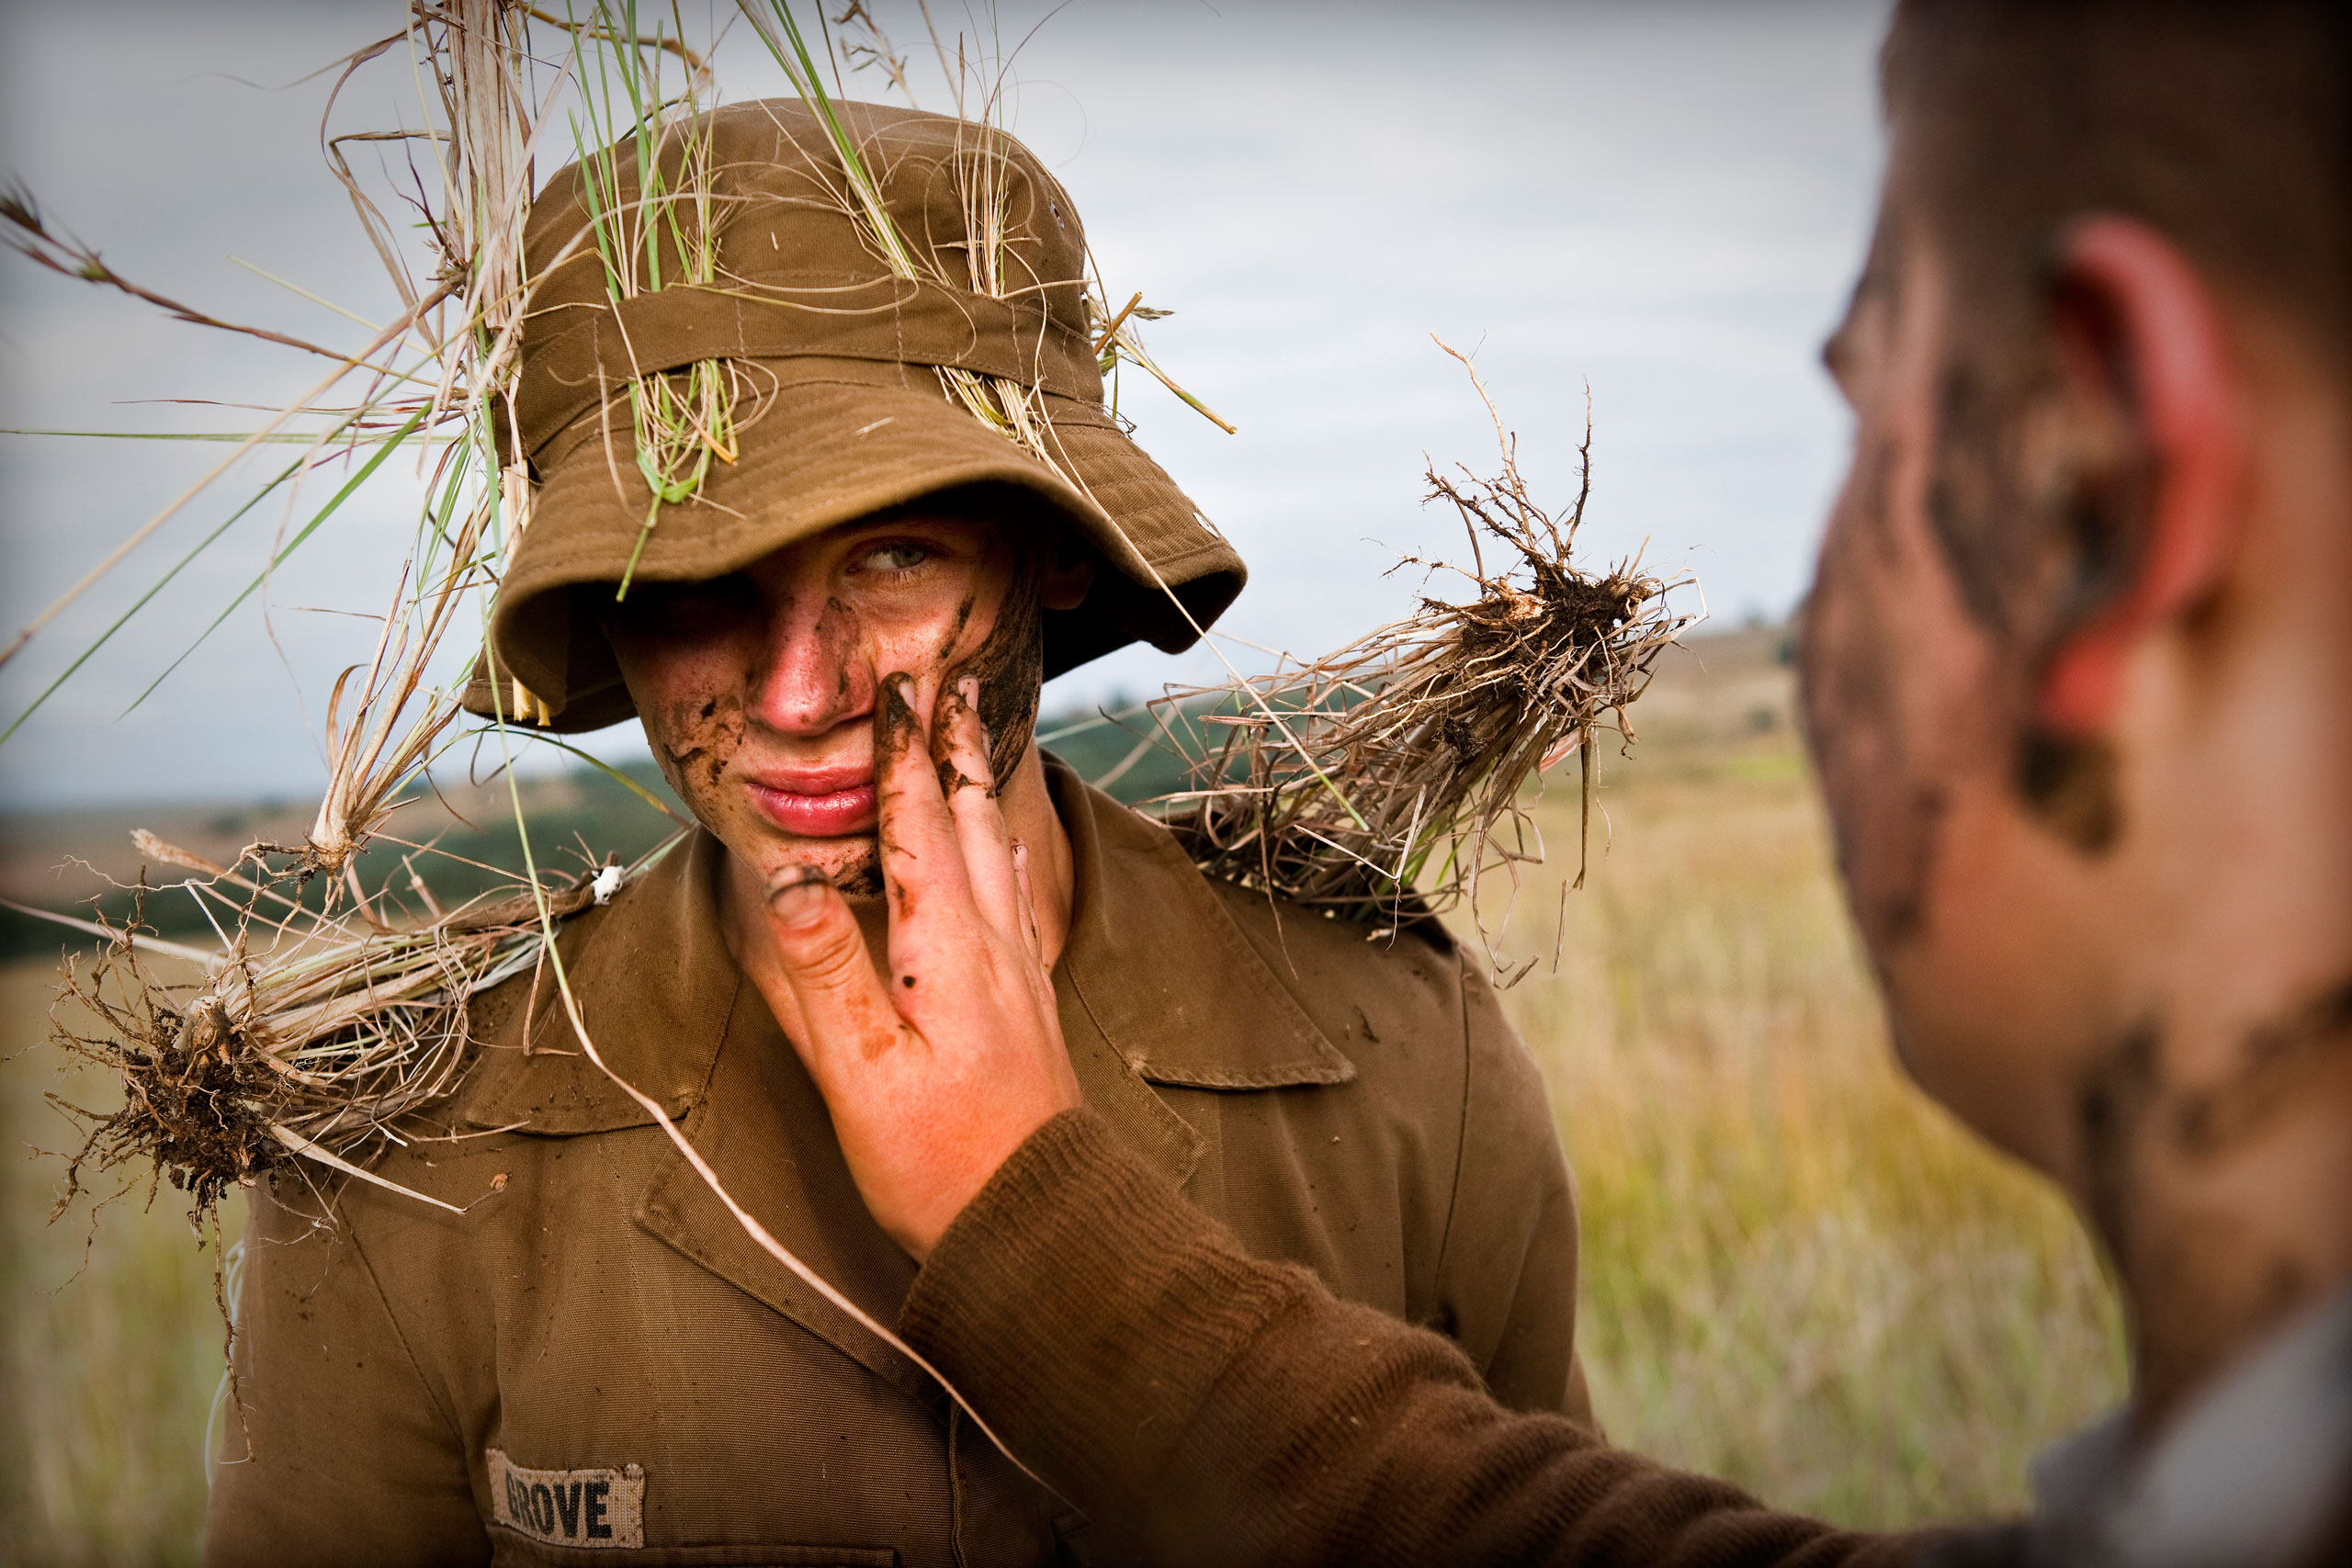 A boy puts mudd on another boy's face as camouflage during a nine day camp.